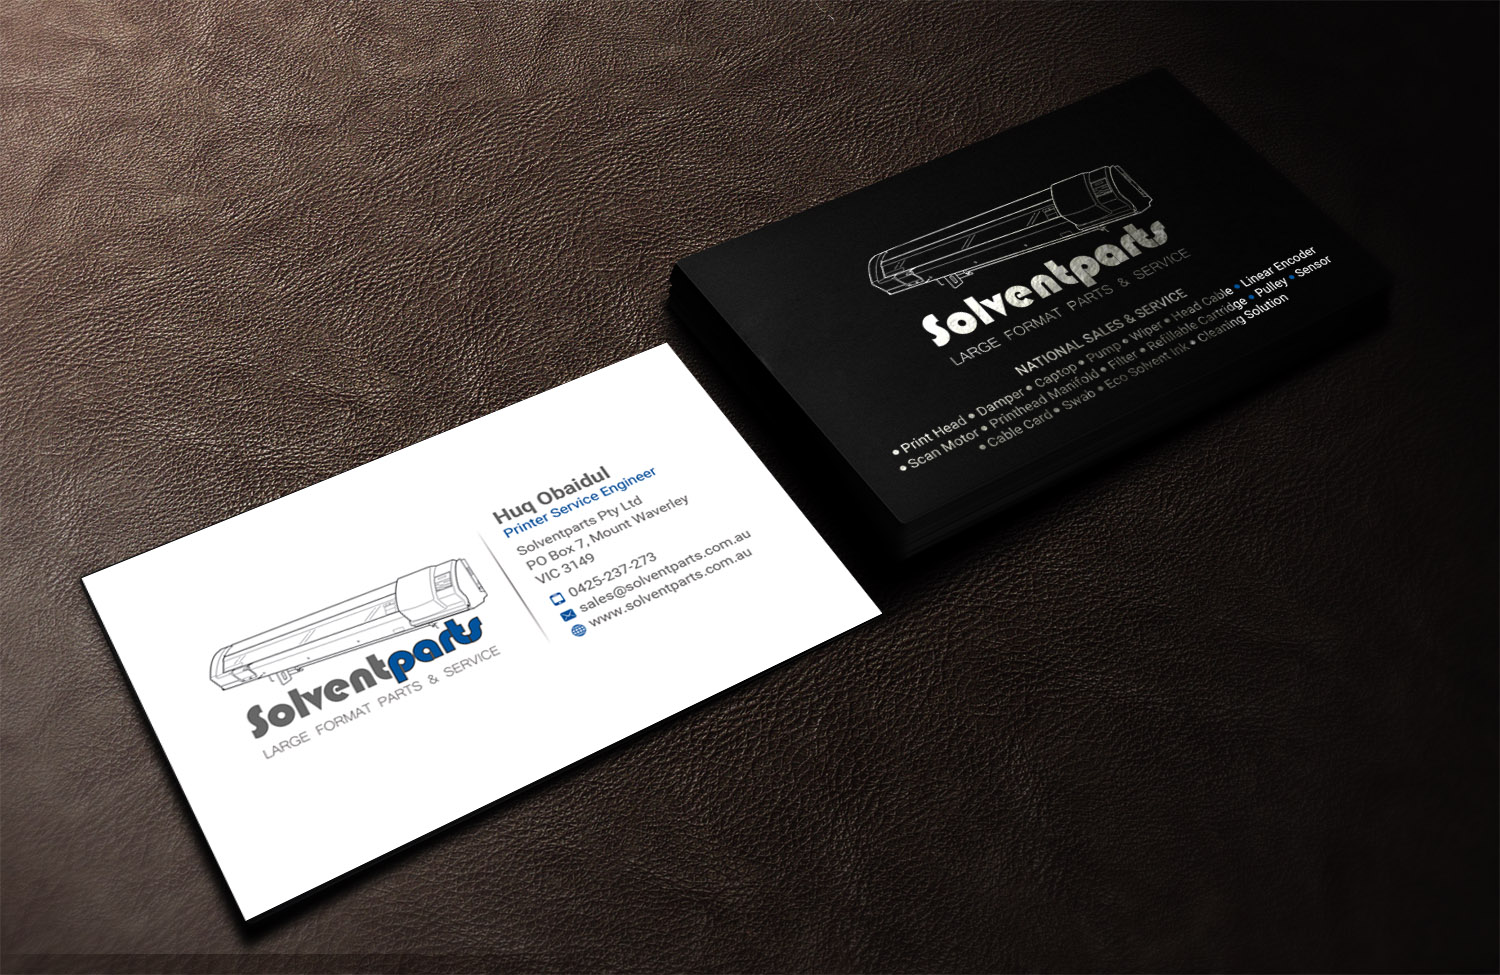 Personable conservative business card design for solventparts by business card design by sandaruwan for solventparts business card design 14715931 reheart Image collections